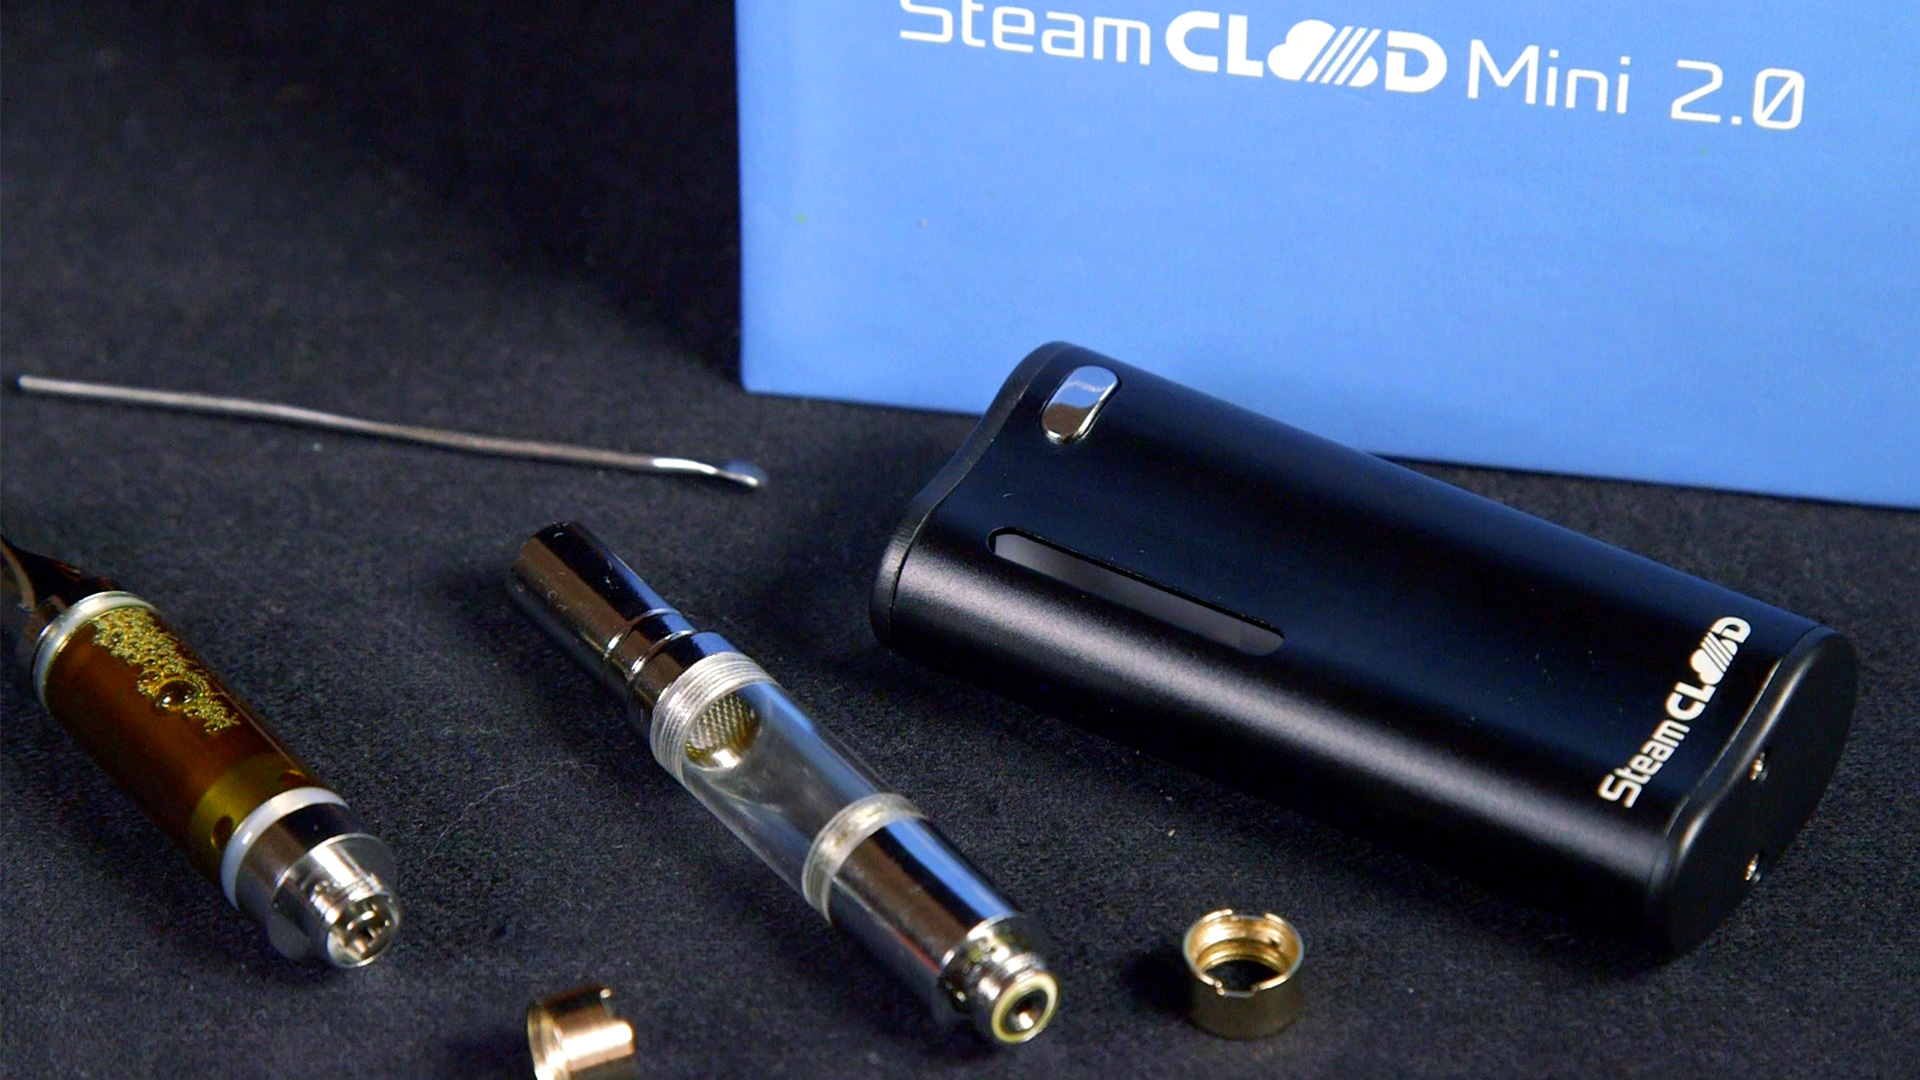 steamcloud-mini-2-review-thumbnail